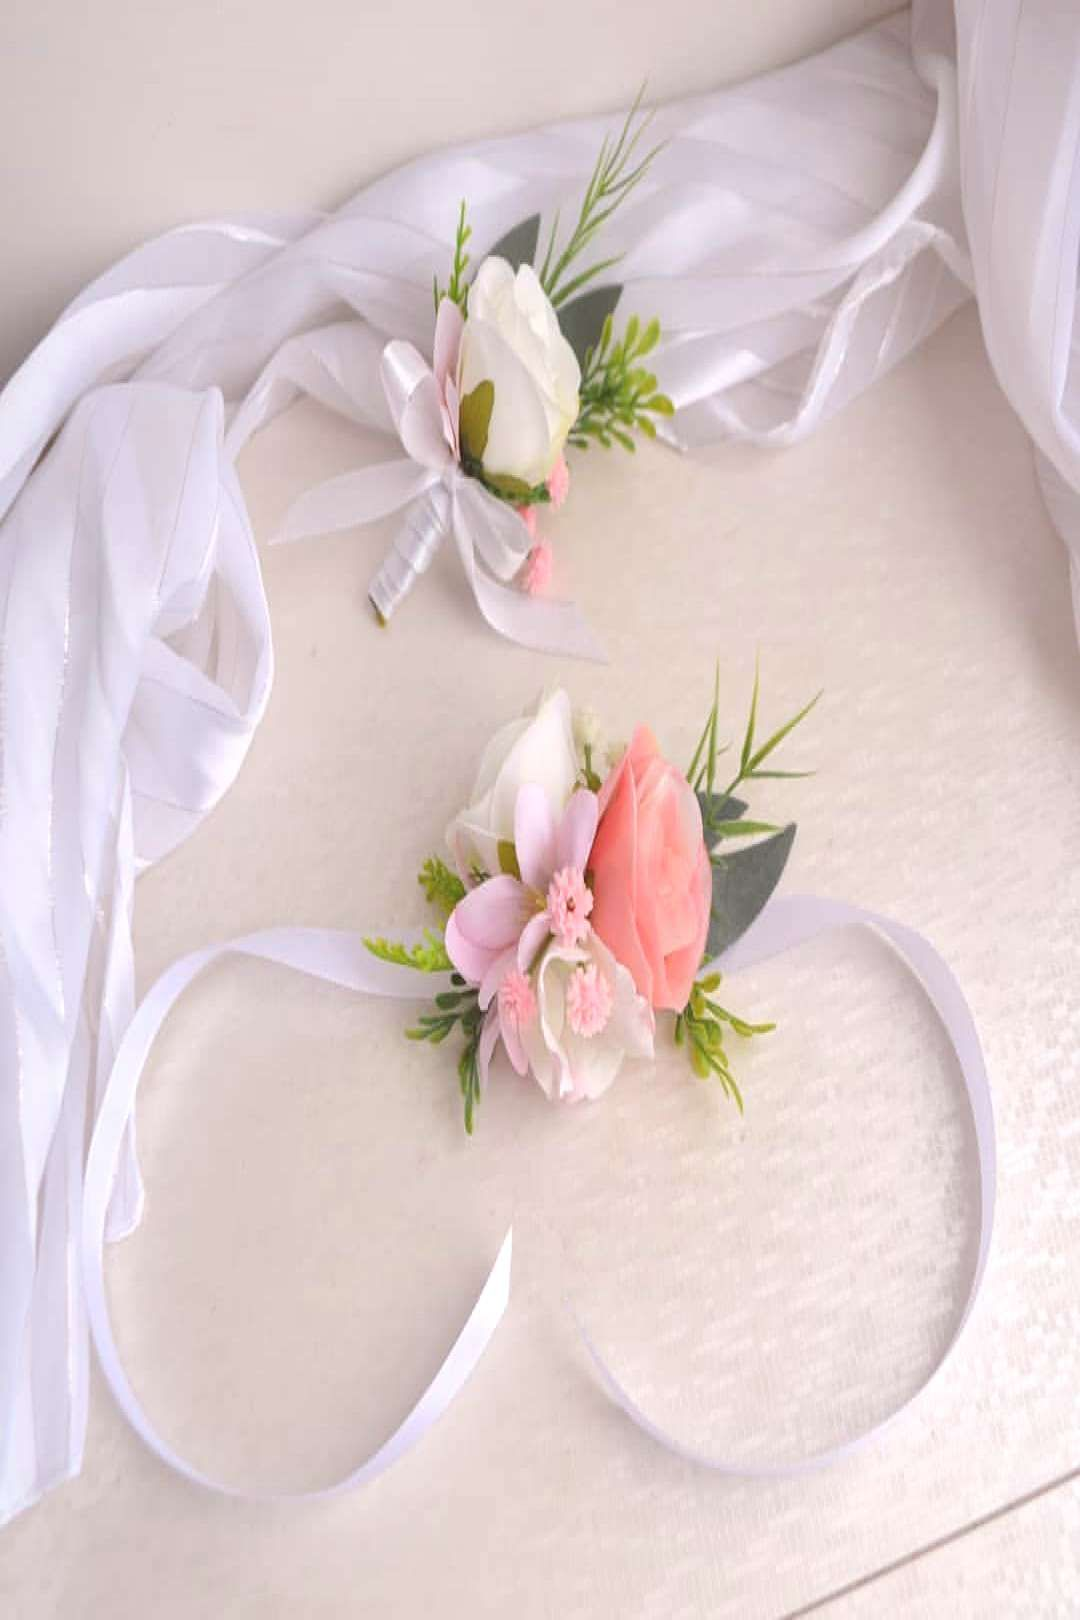 #weddingboutonniere #bohoflowerc #collection #romantic #wedding #flower #set Wedding set. Romantic collection #weddingboutonniere #bohoflowercYou can find Pink wedding and more on our website.Wedding set. Romantic collection #weddingbou...